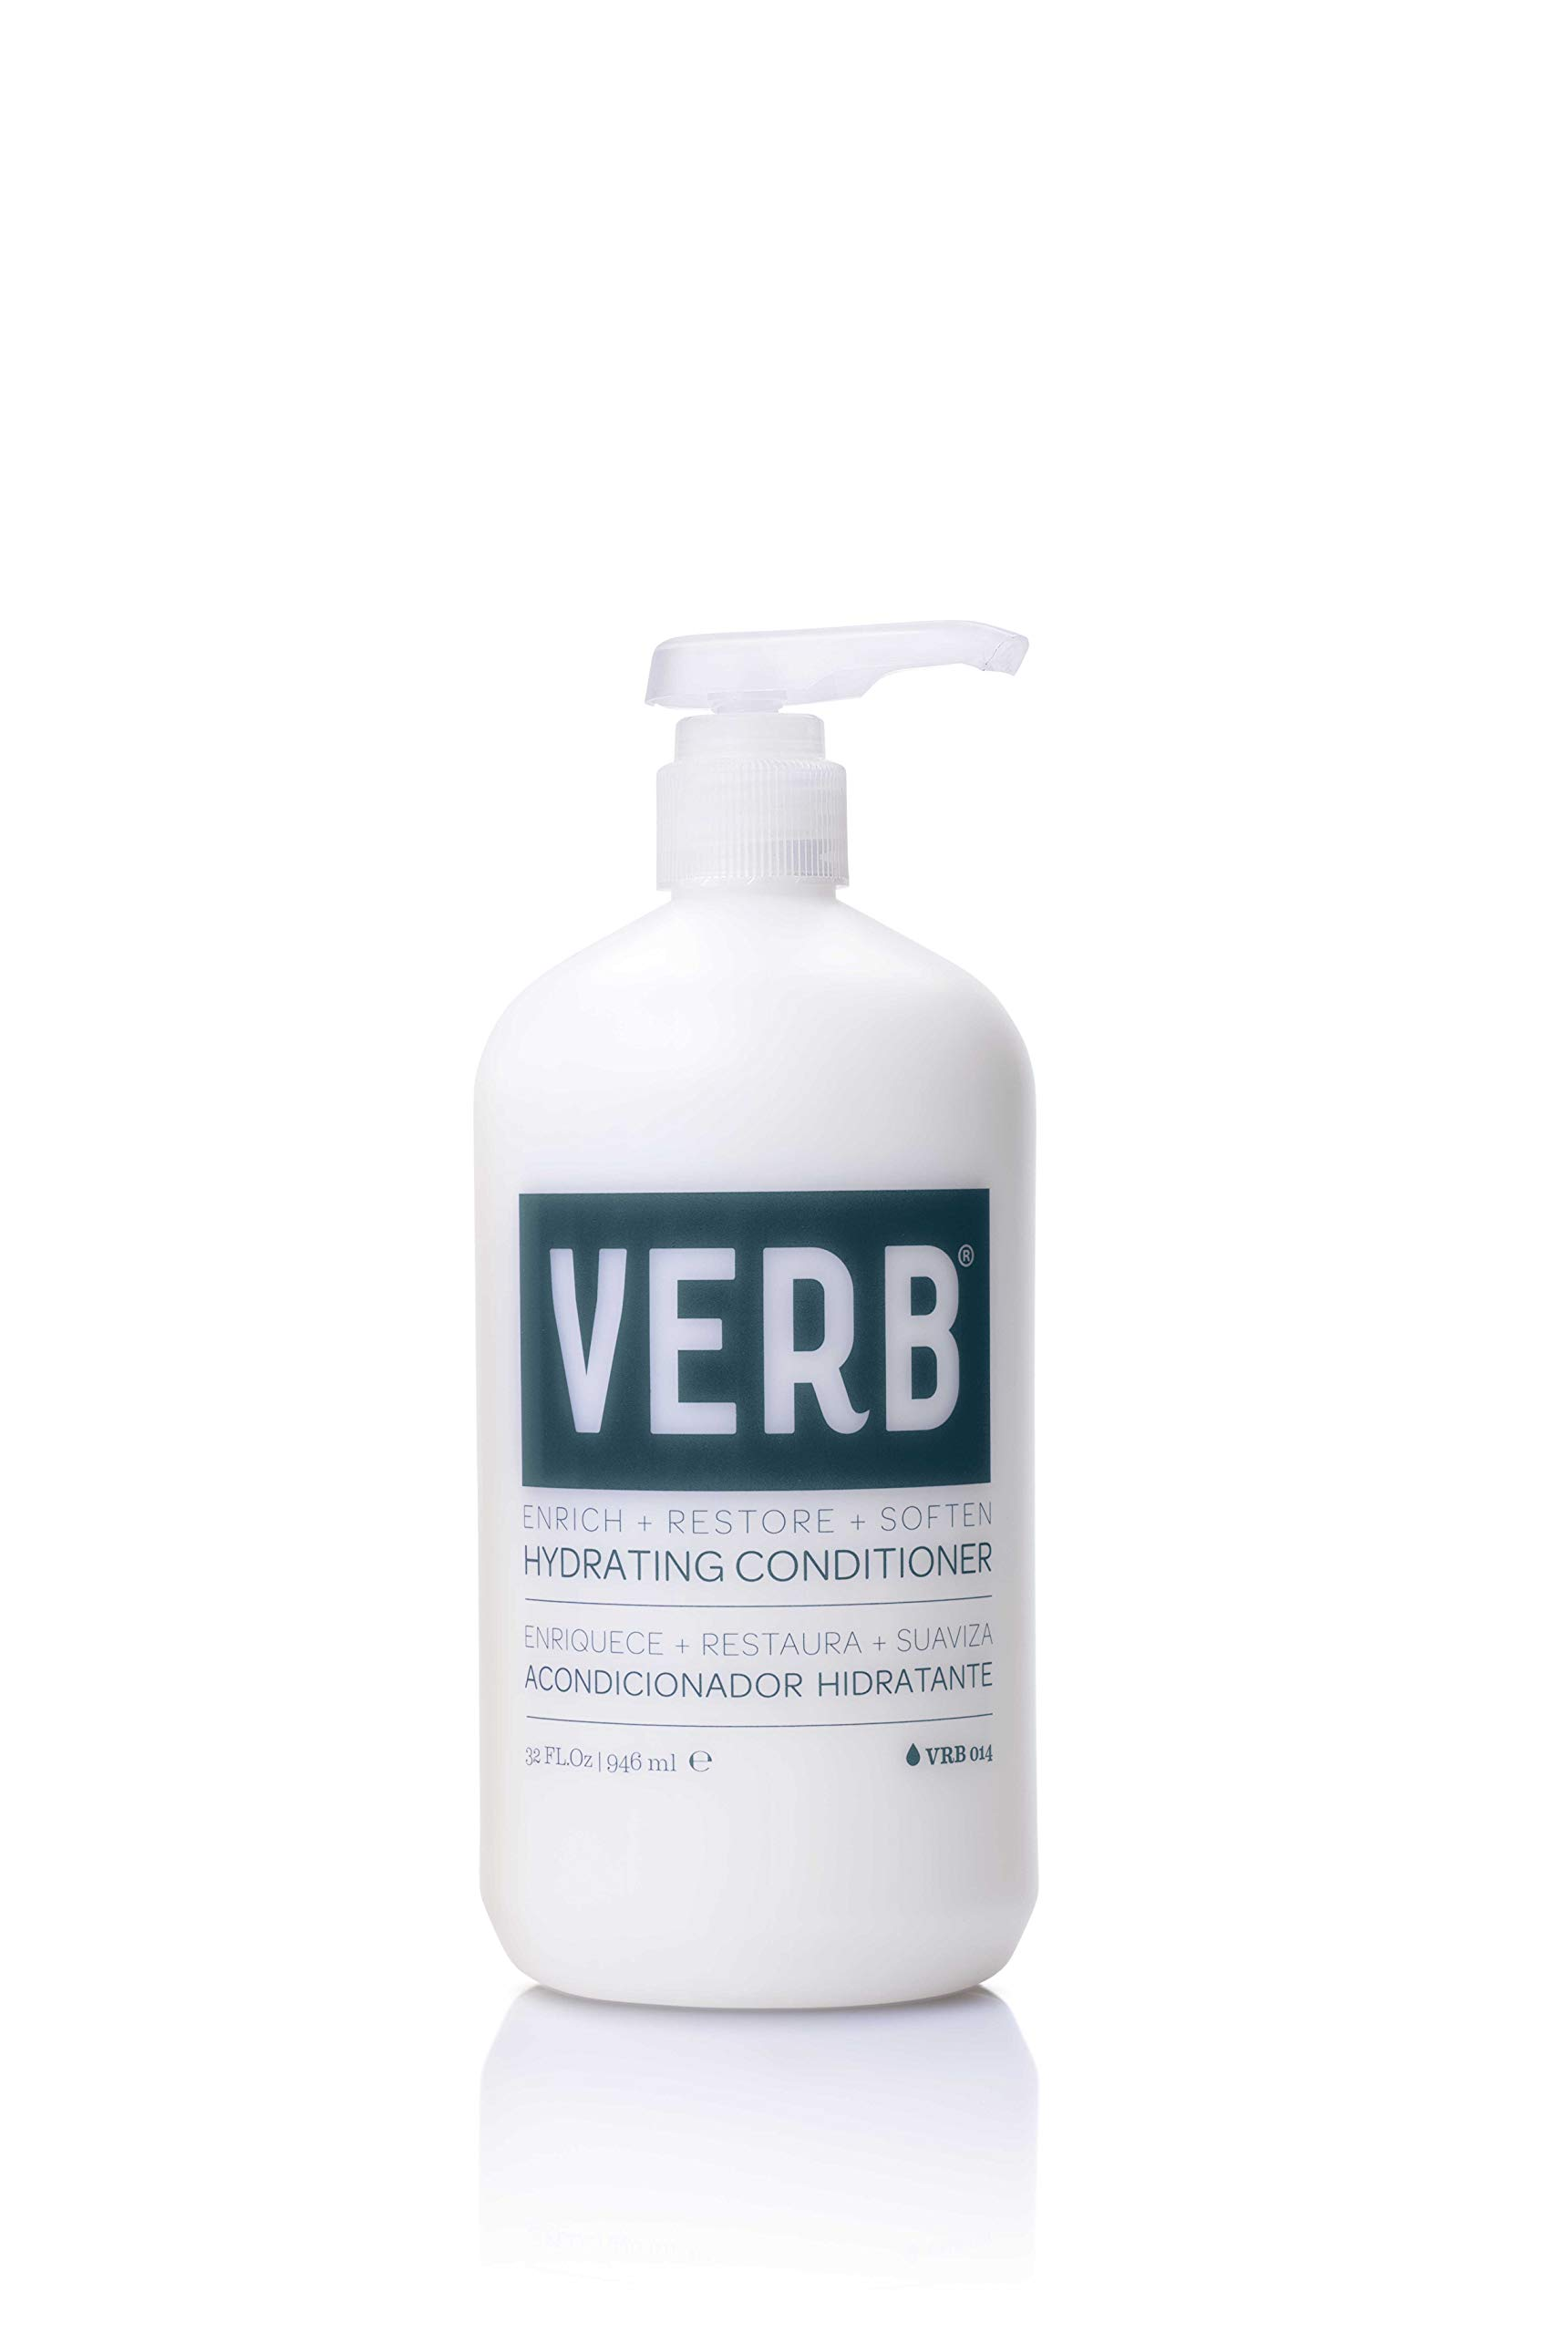 Verb Hydrating Conditioner for Unisex, 32 Ounce by verb